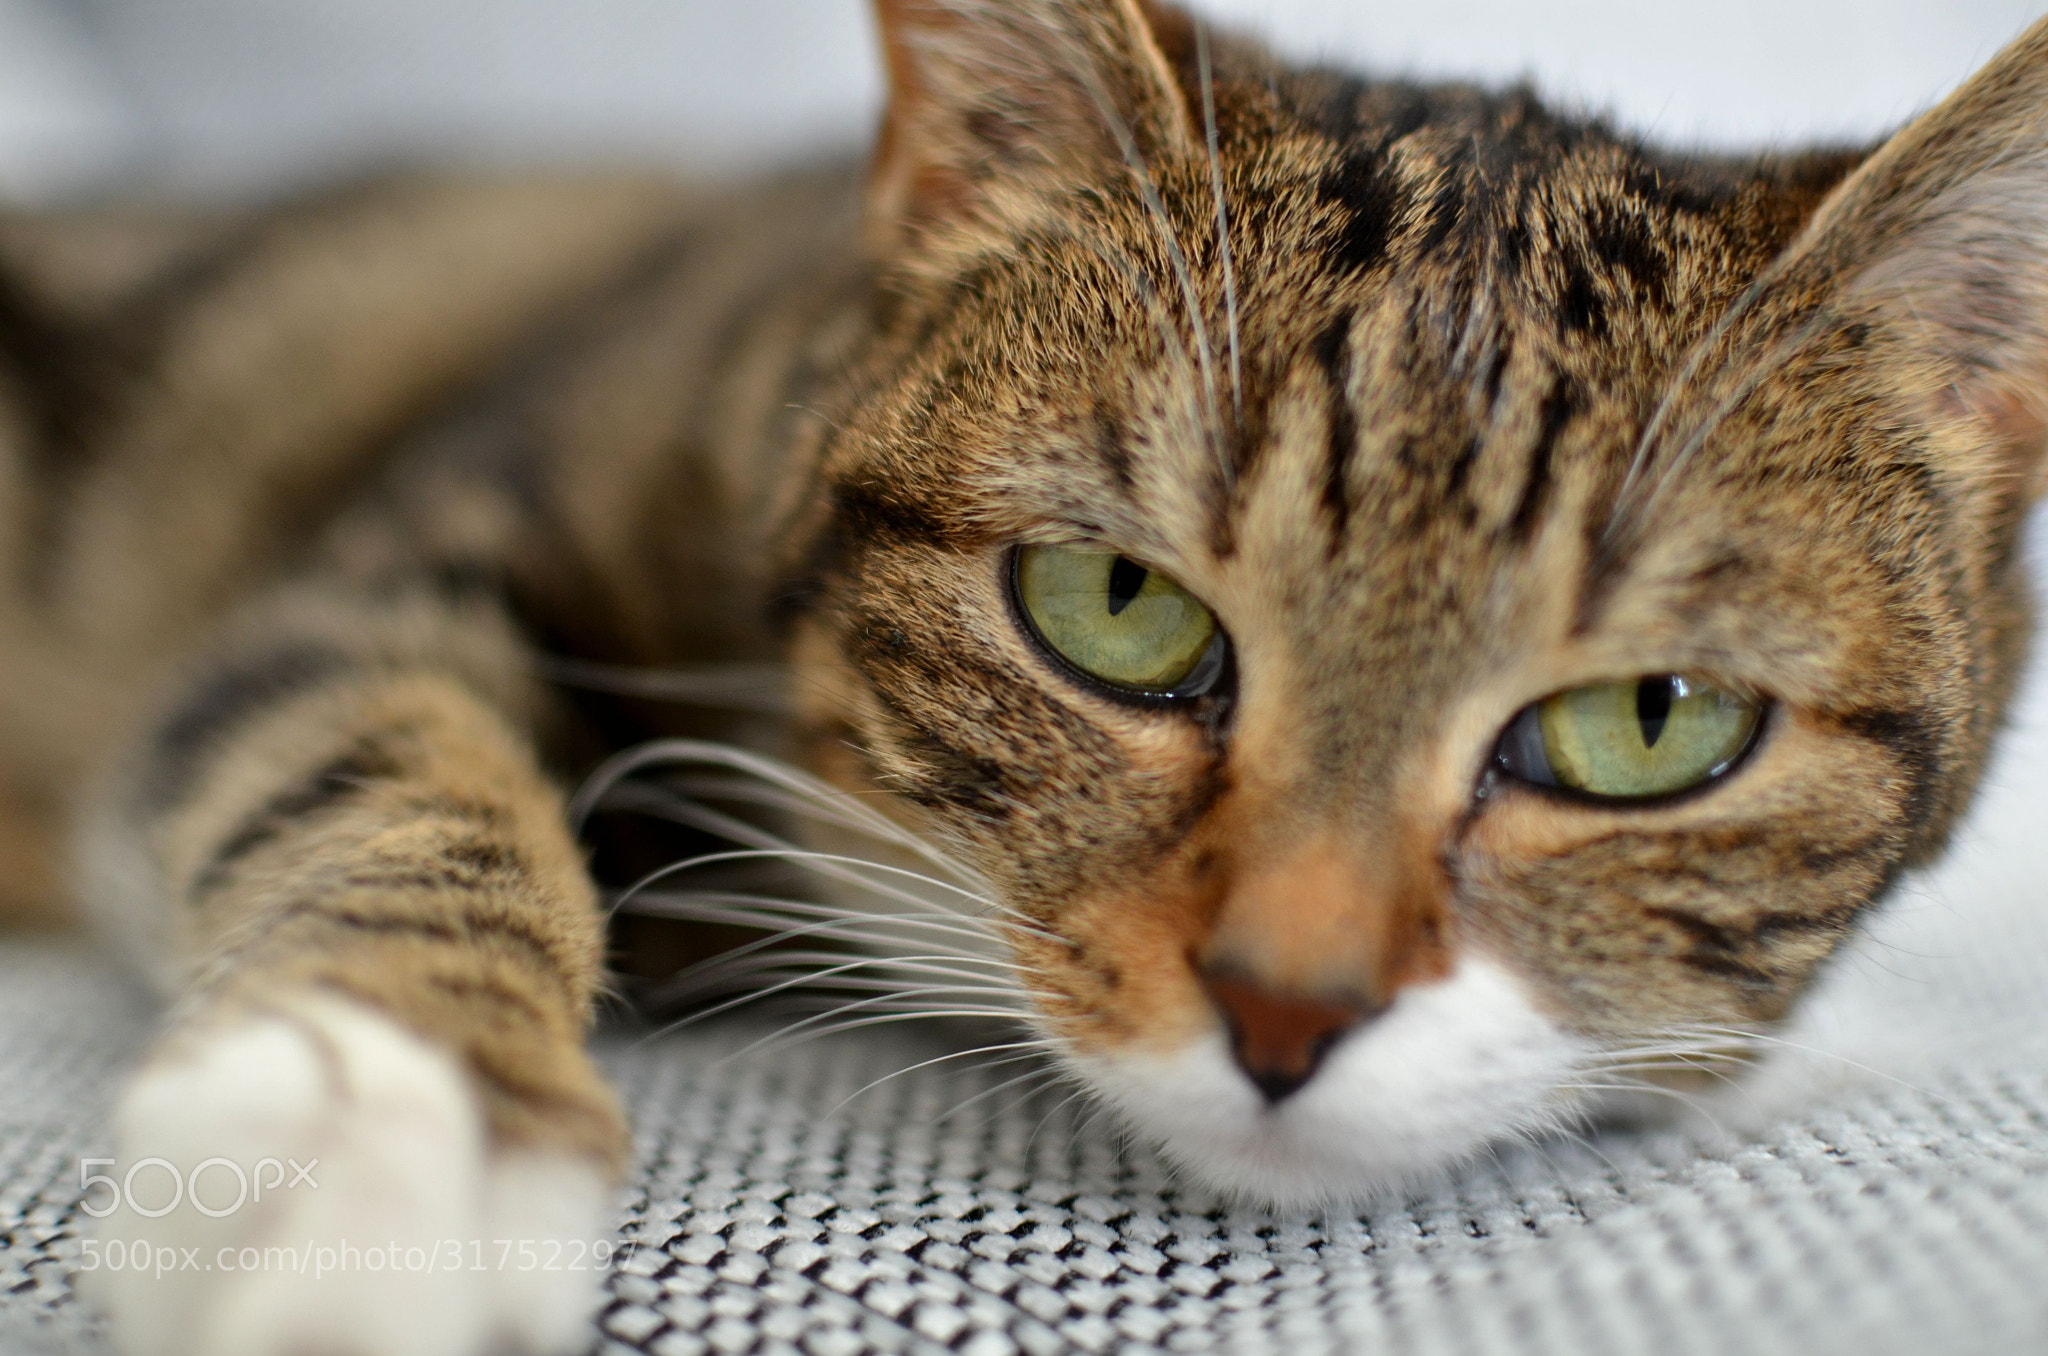 Photograph Kira, the cat by Michael Vergères on 500px